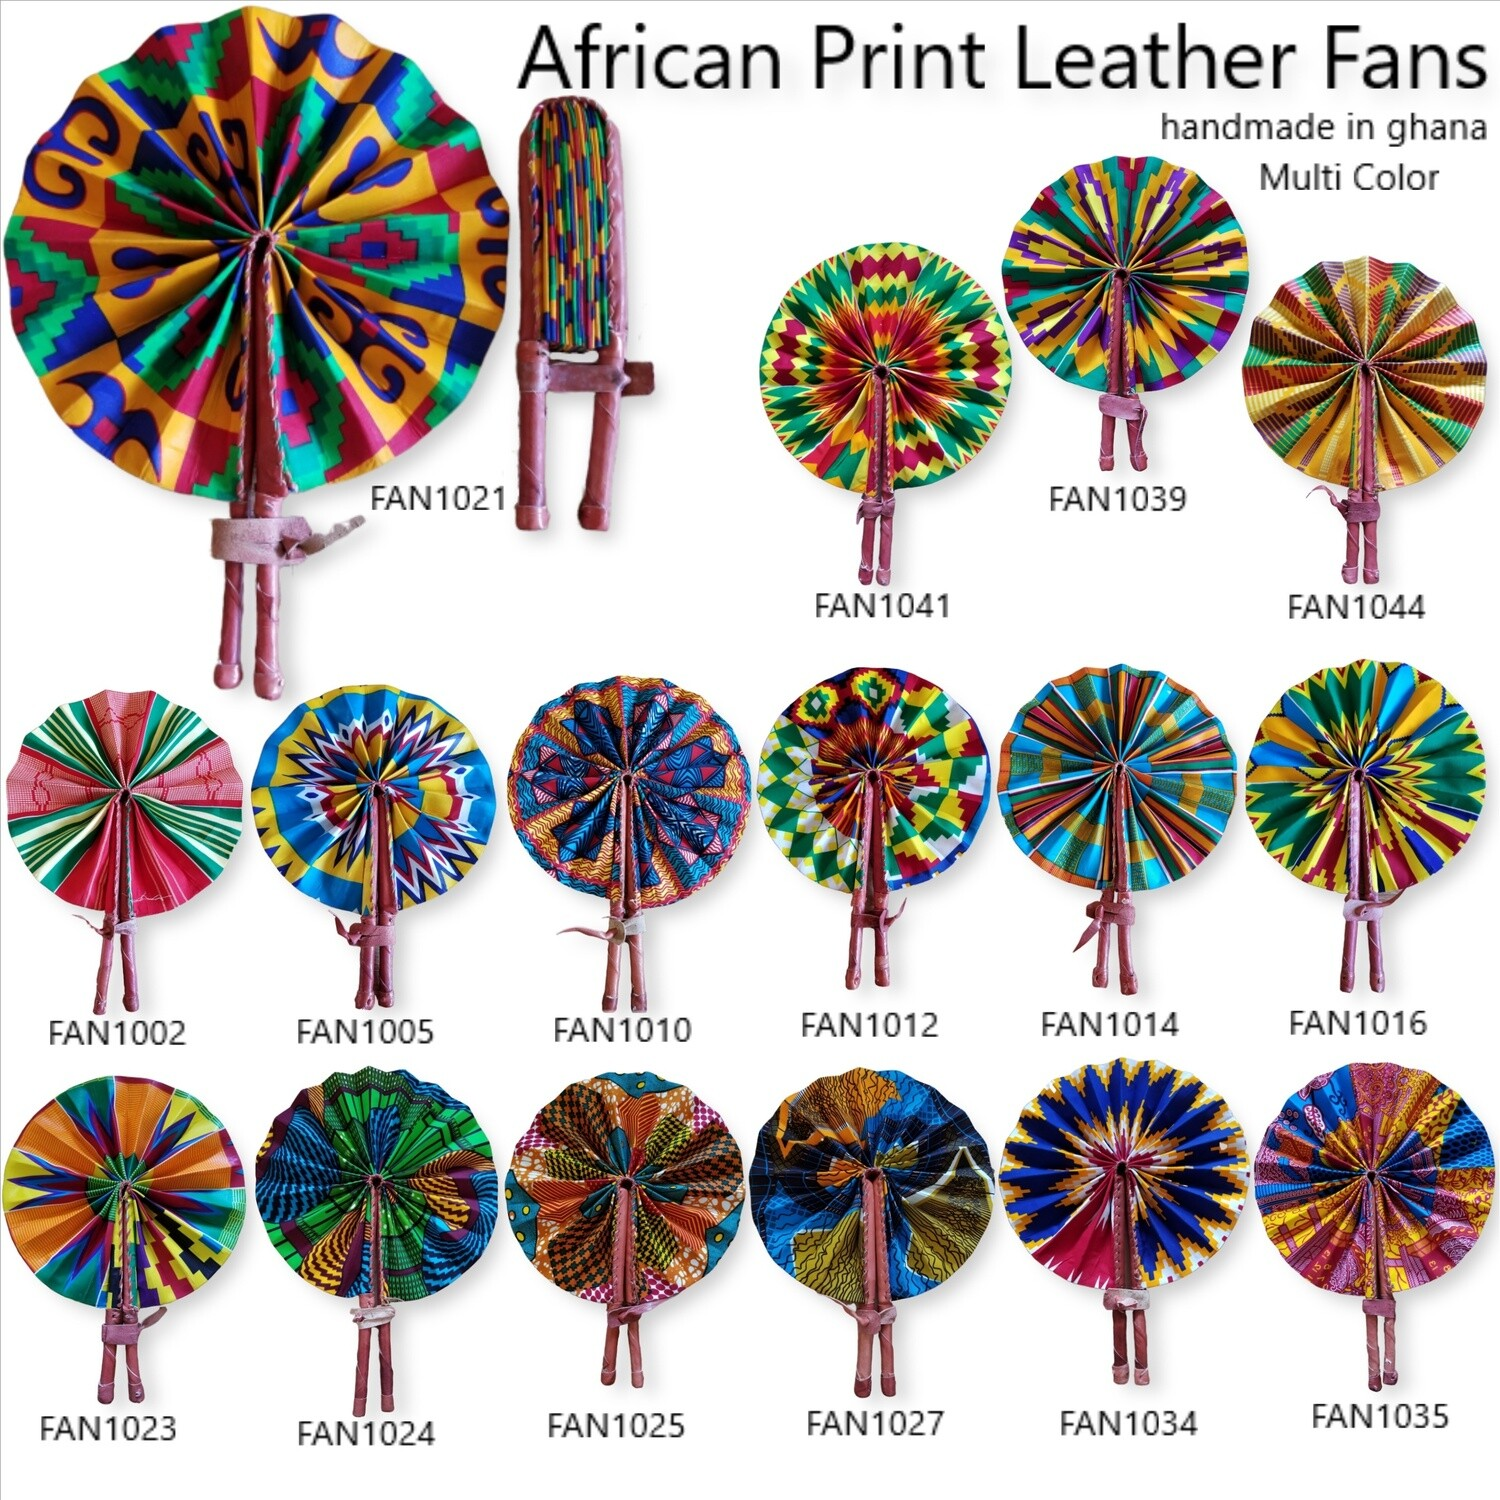 Multi Color African Print Leather Fans